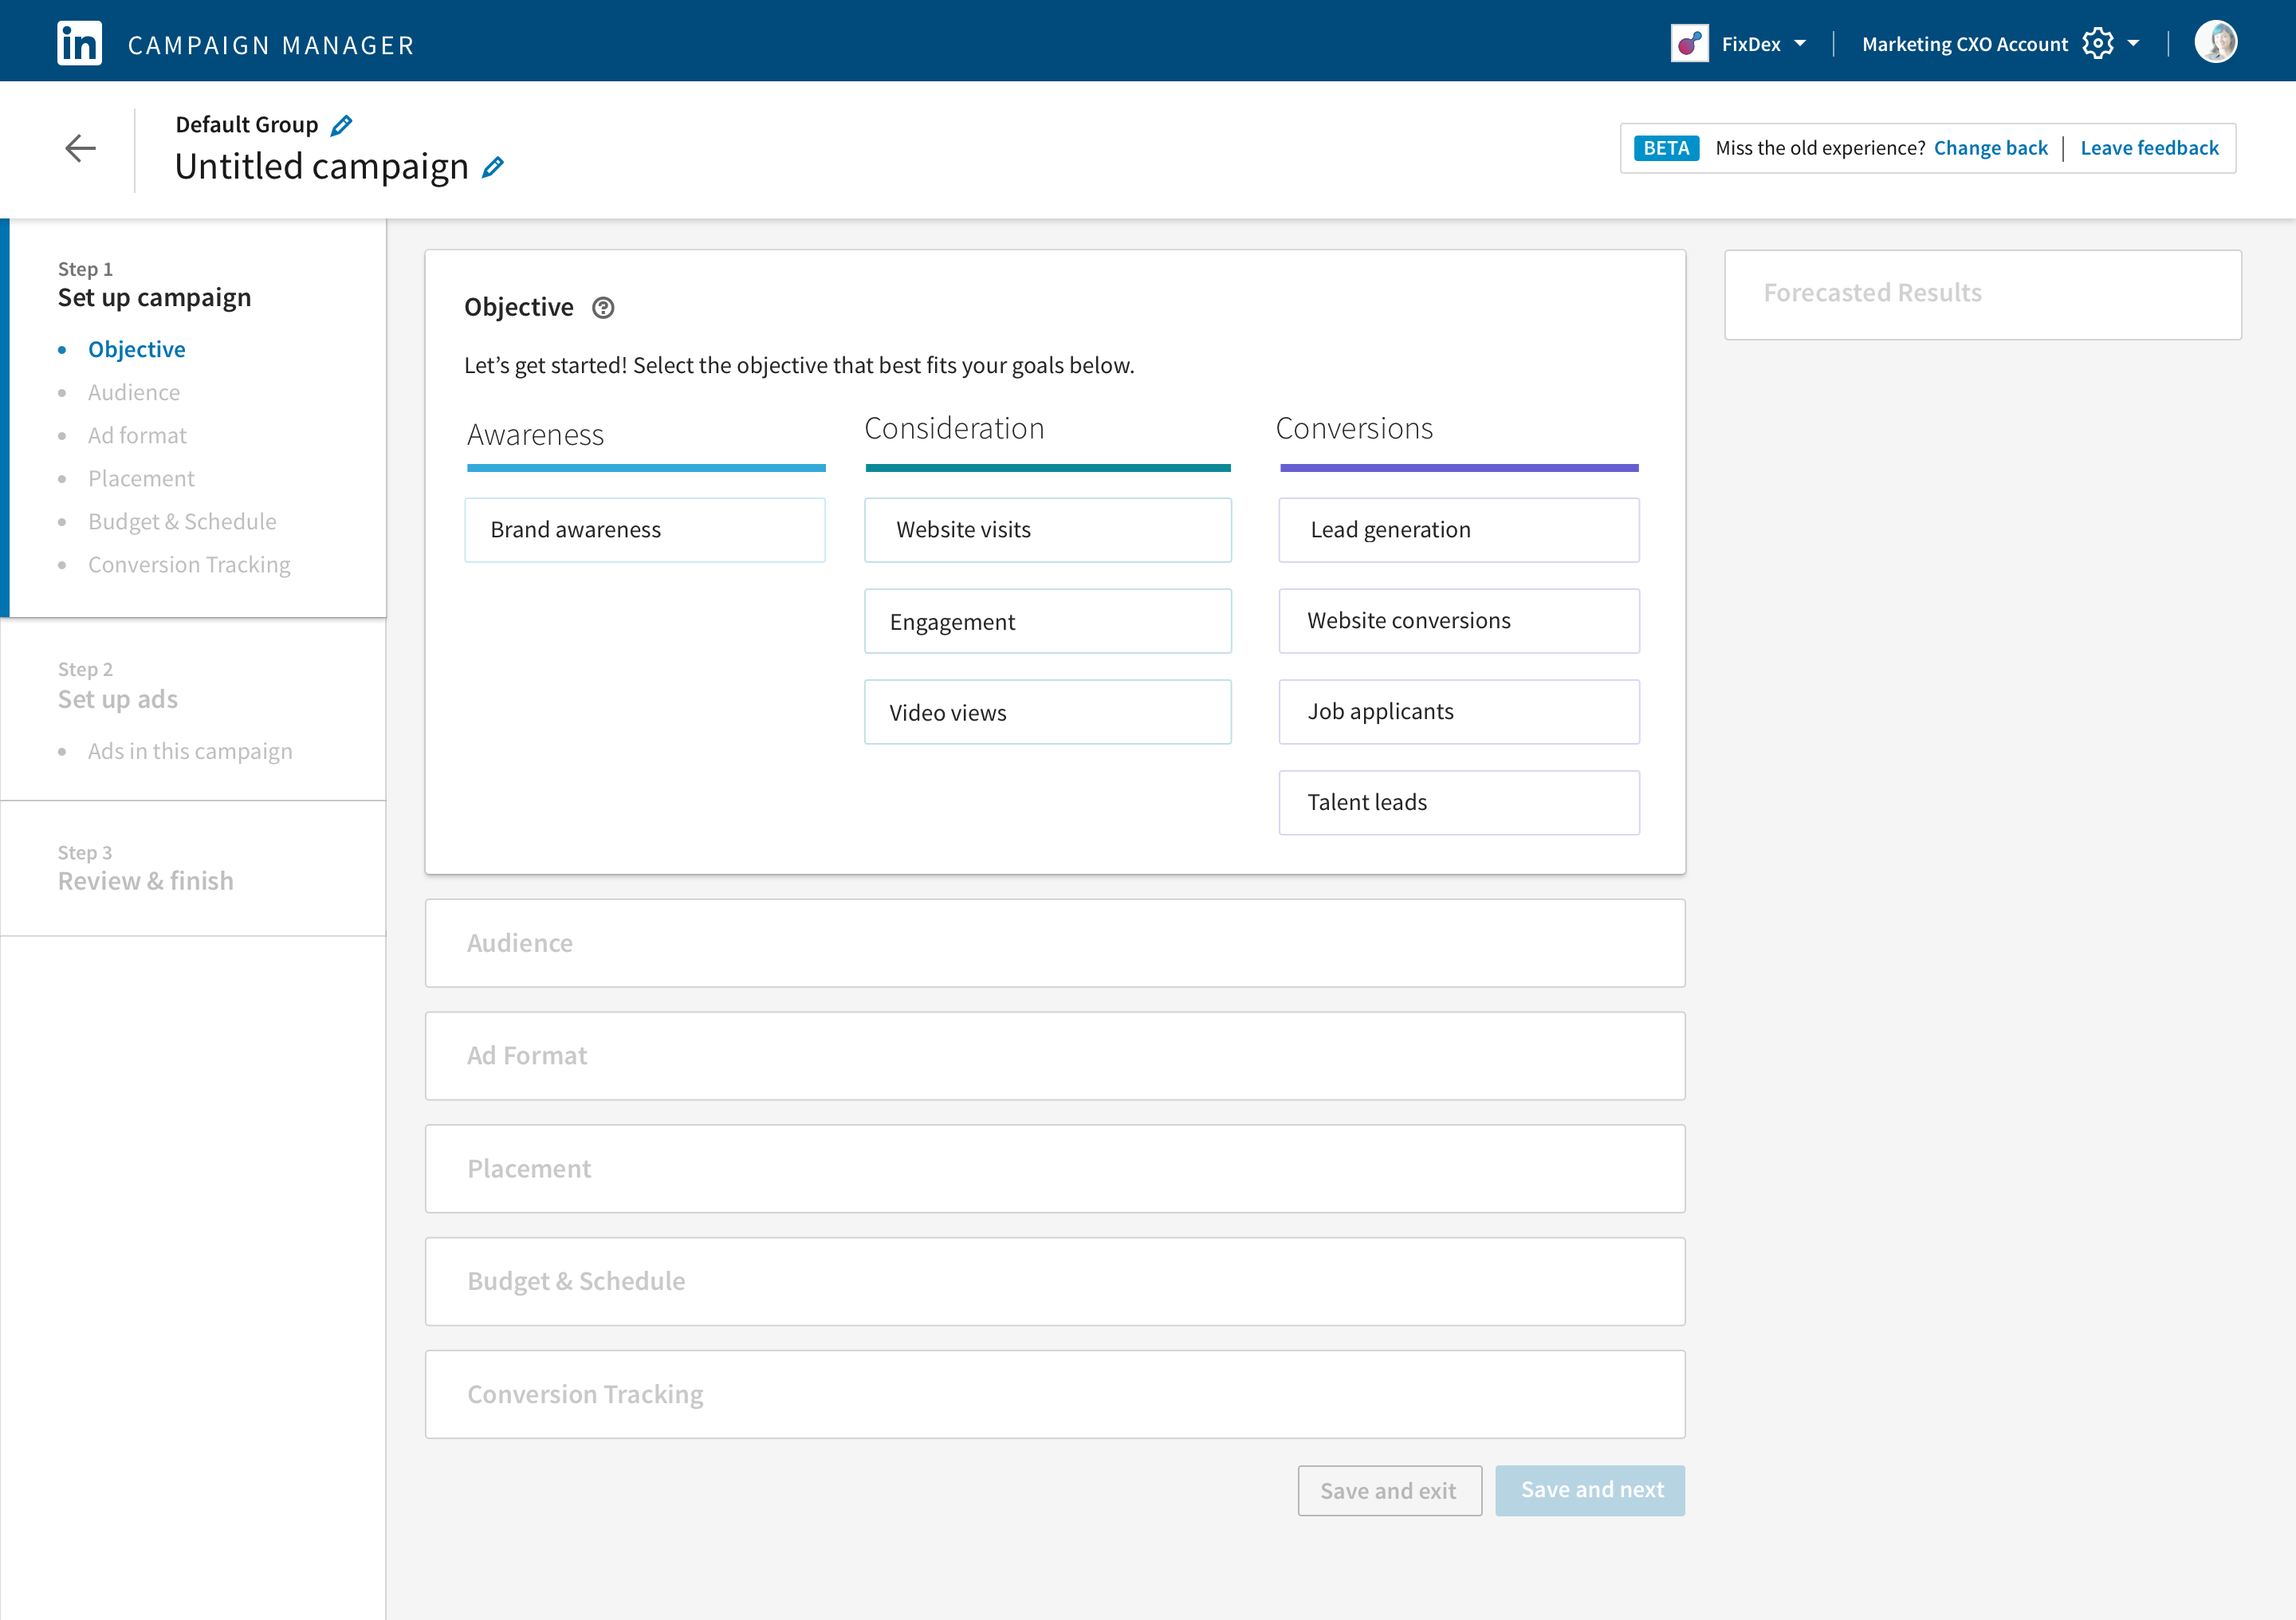 LinkedIn Introduces Public Beta of Objective-Based Advertising in Campaign Manager - LinkedIn Marketing Blog